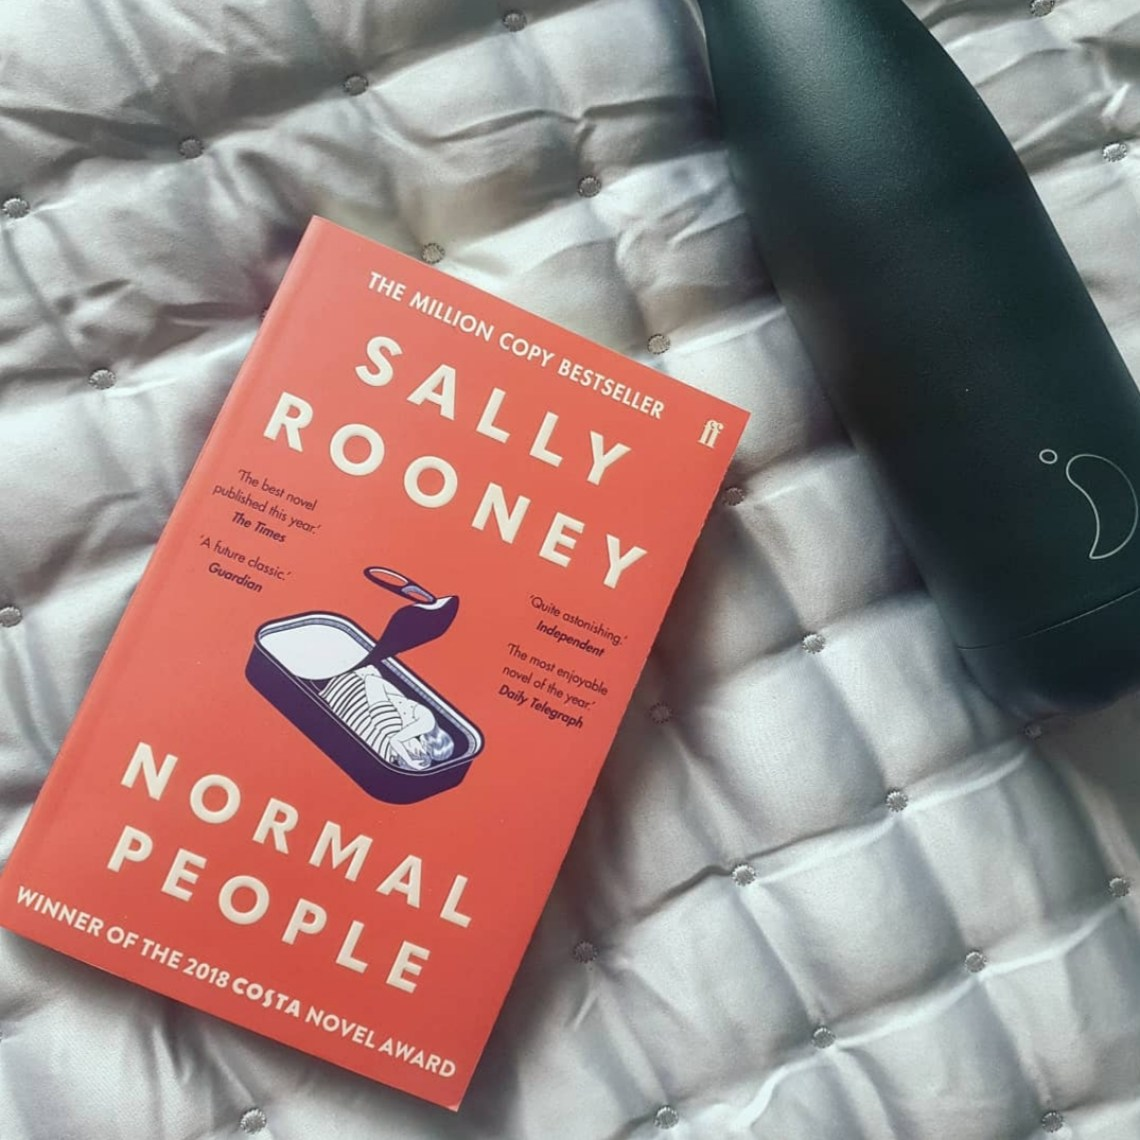 A flatlay image of Normal People by Sally Rooney and a dark green Chilly's water bottle.